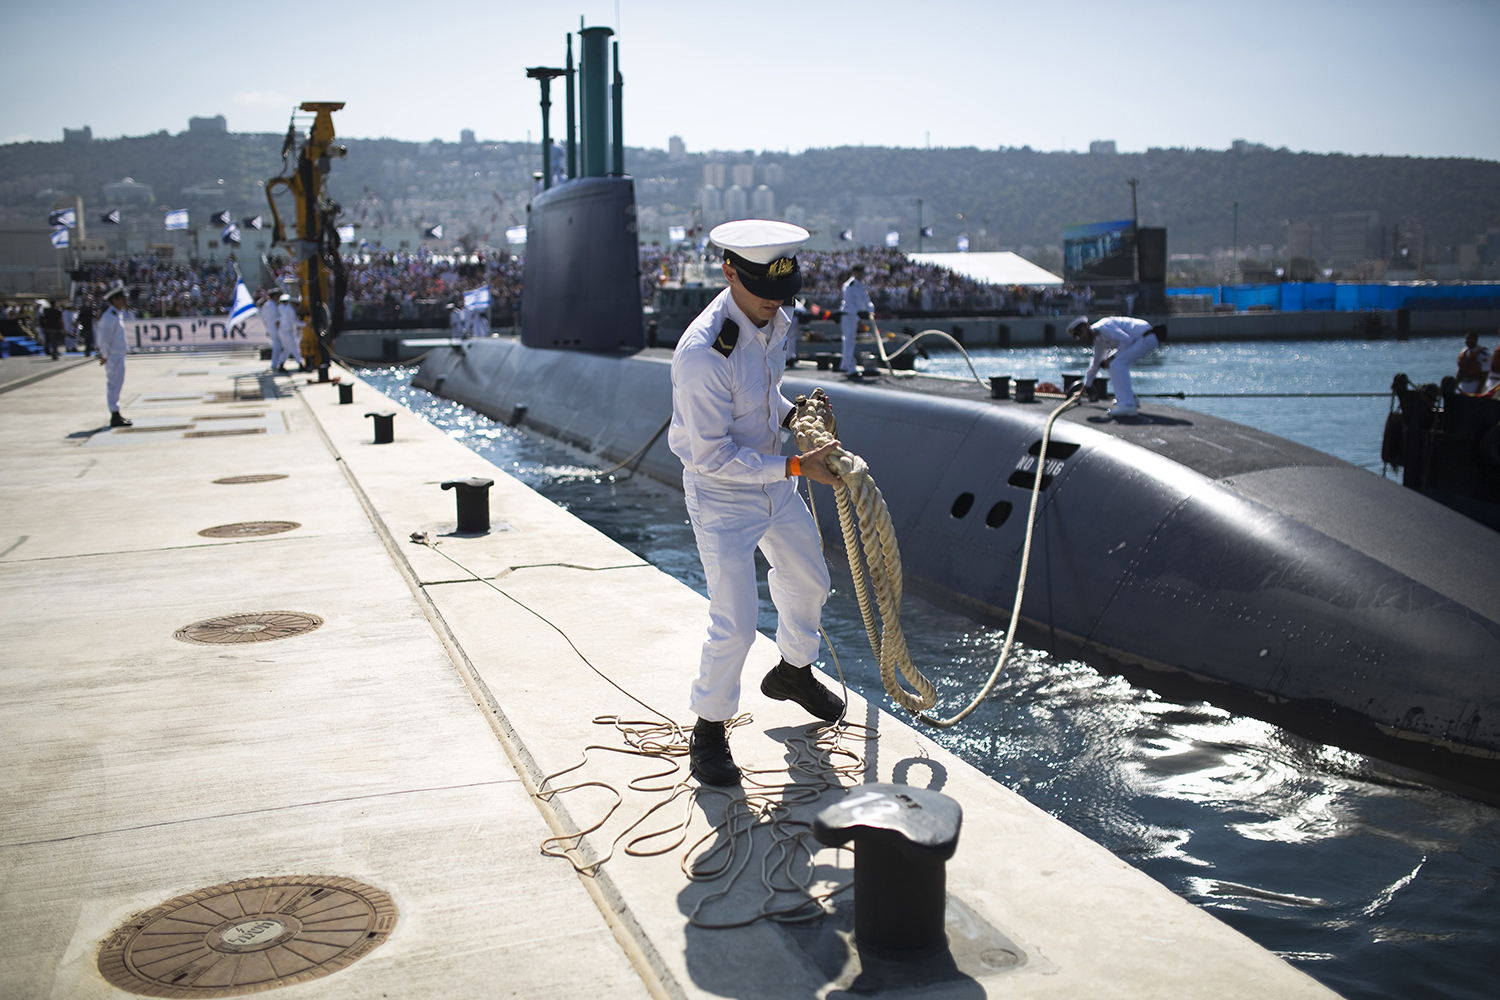 An Israeli naval officer holds the mooring rope of an INS Tanin, a Dolphin AIP class submarine, during a ceremony upon its arrival at a naval base in the northern Israeli city of Haifa, on Sept. 23, 2014. Tanin is the first German-built Dolphin AIP class vessel ordered by Israel.